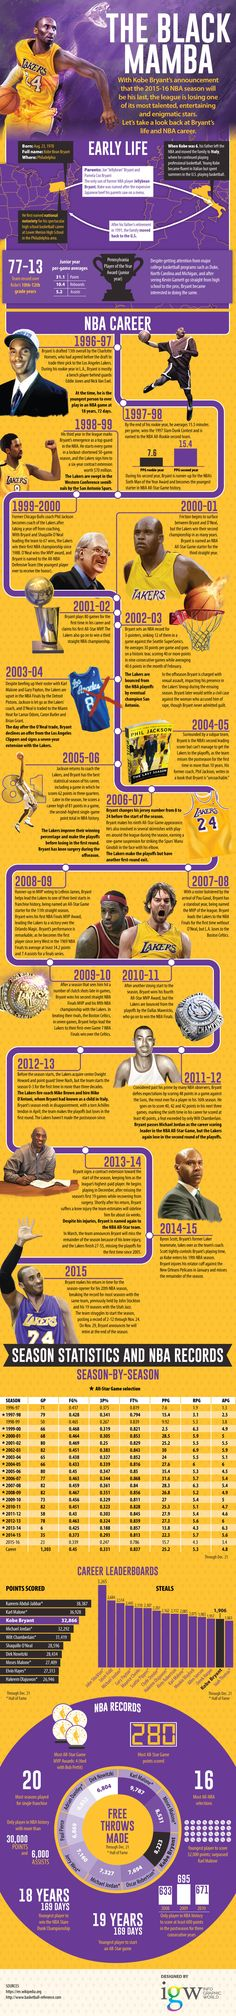 """Kobe understood what dedication and hard work meant! """"From humble beginnings to becoming one of the most recognized faces in the NBA, here's our rendition of the Kobe Bryant """"look back"""". Basketball Legends, Sports Basketball, College Basketball, Basketball Stuff, Kobe Bryant 24, Lakers Kobe Bryant, Kobe Bryant Retirement, Lakers Team, Kobe Bryant Pictures"""